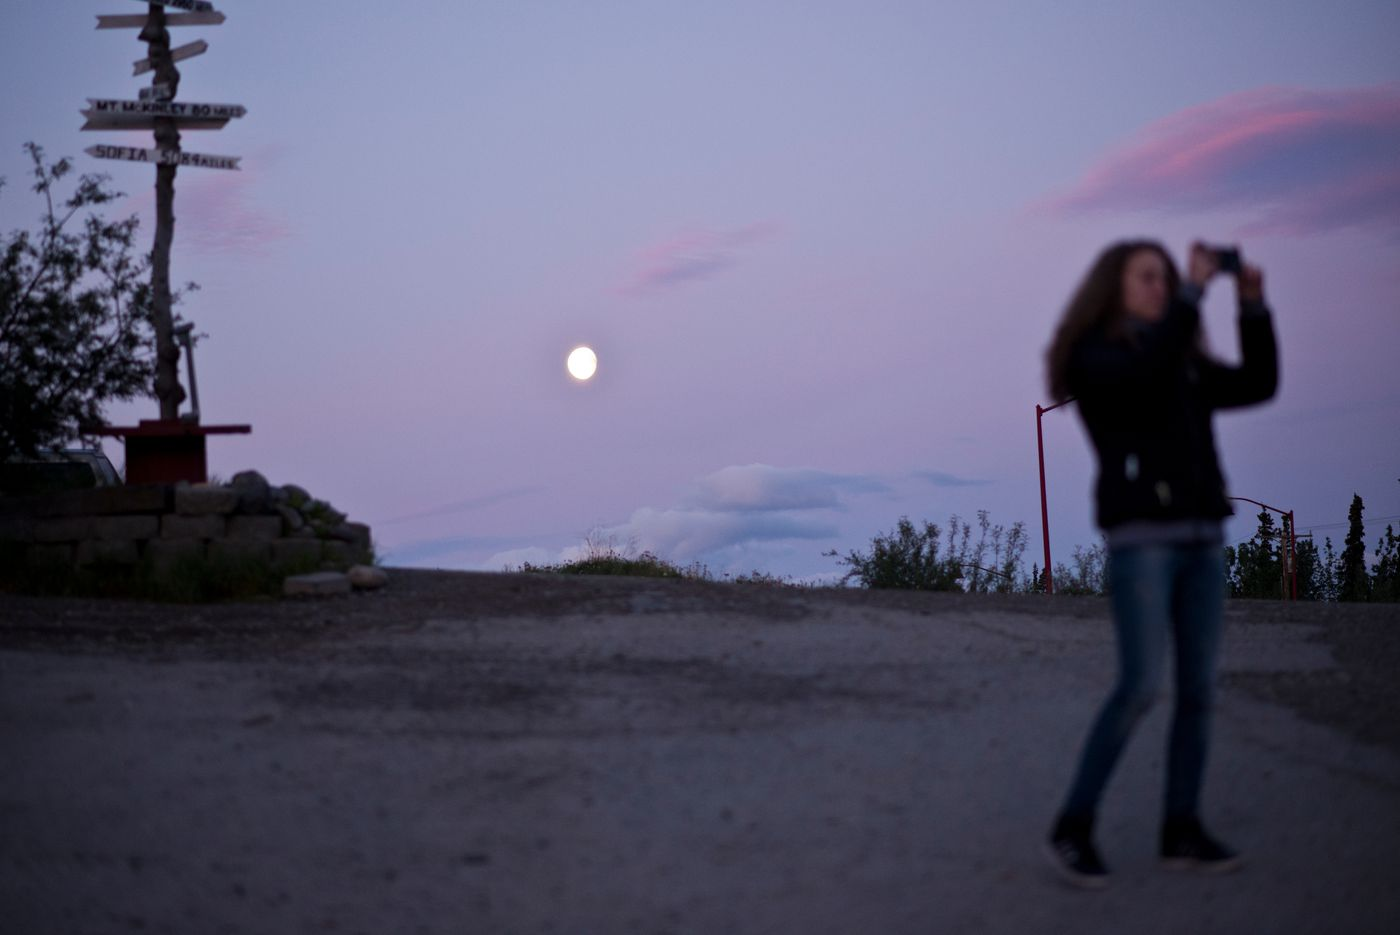 Before boarding a shuttle bus back to employee dorms, a woman takes a picture at about 2:30 a.m. Thursday, June 23, 2016. The event is one of the few social outing for many J-1 visa students who work multiple jobs in the business district outside Denali National Park. (Marc Lester / Alaska Dispatch News)